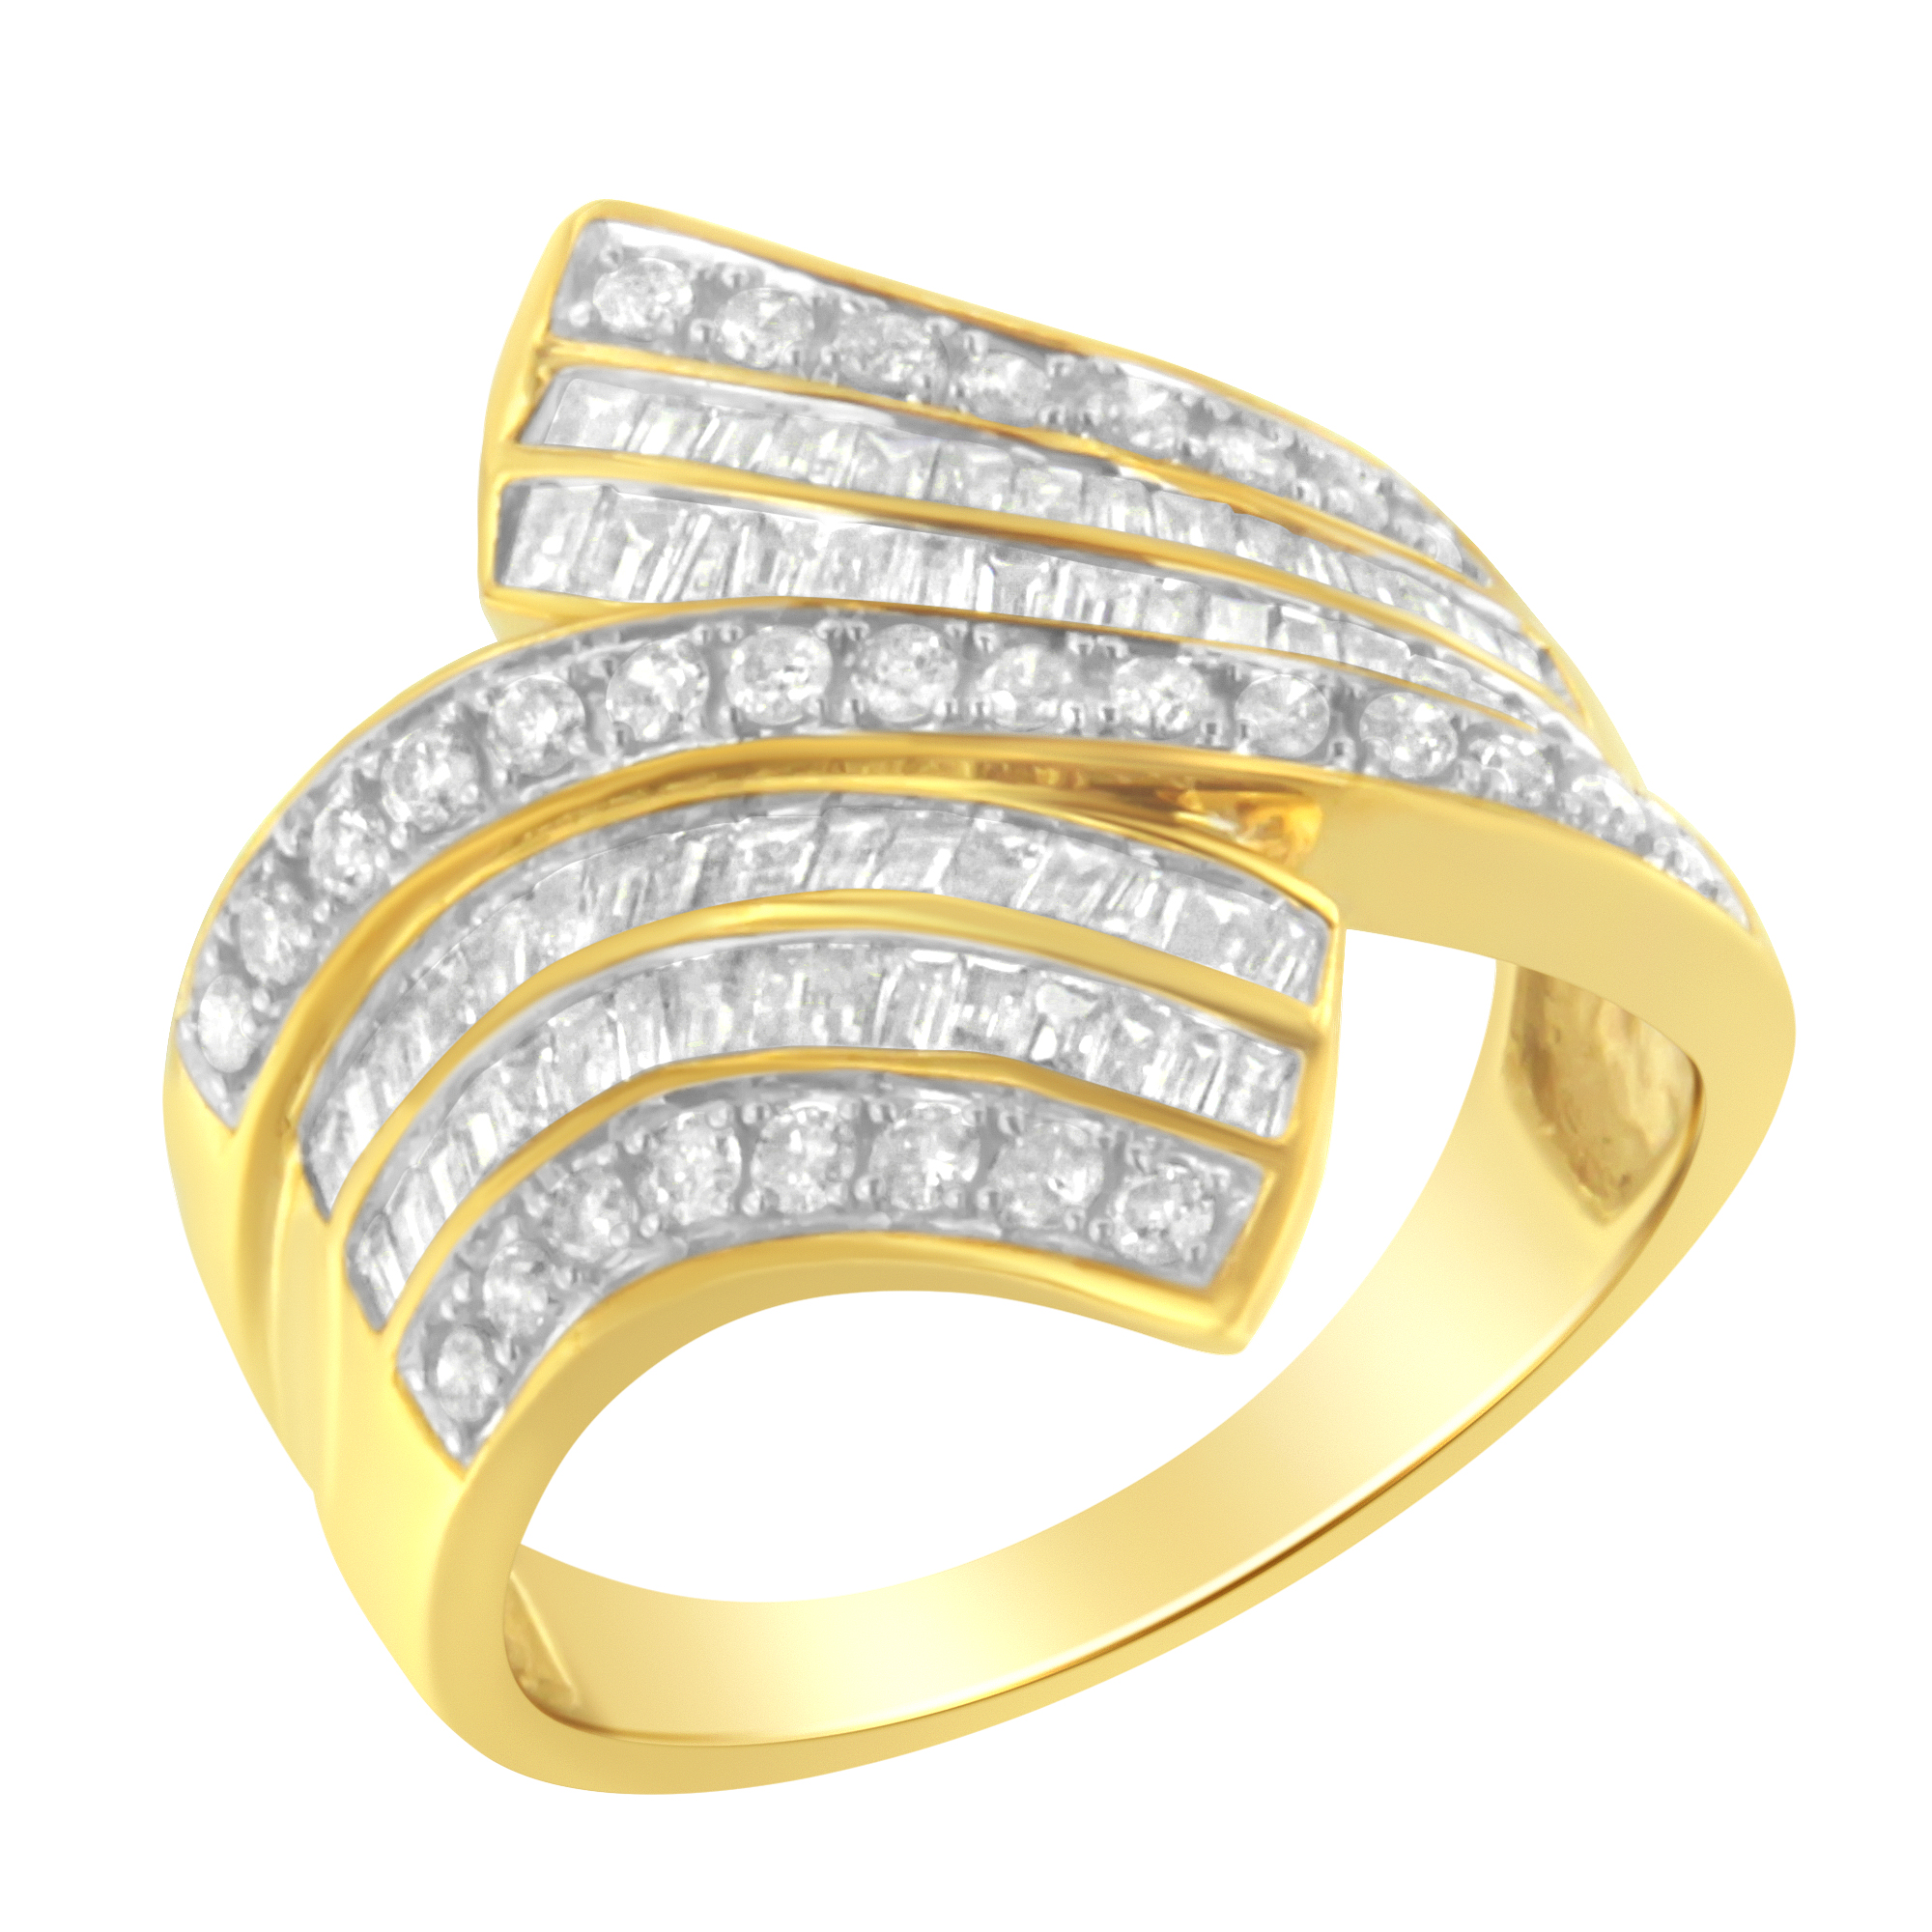 Original Classics 10k Yellow Gold Plated Sterling Silver